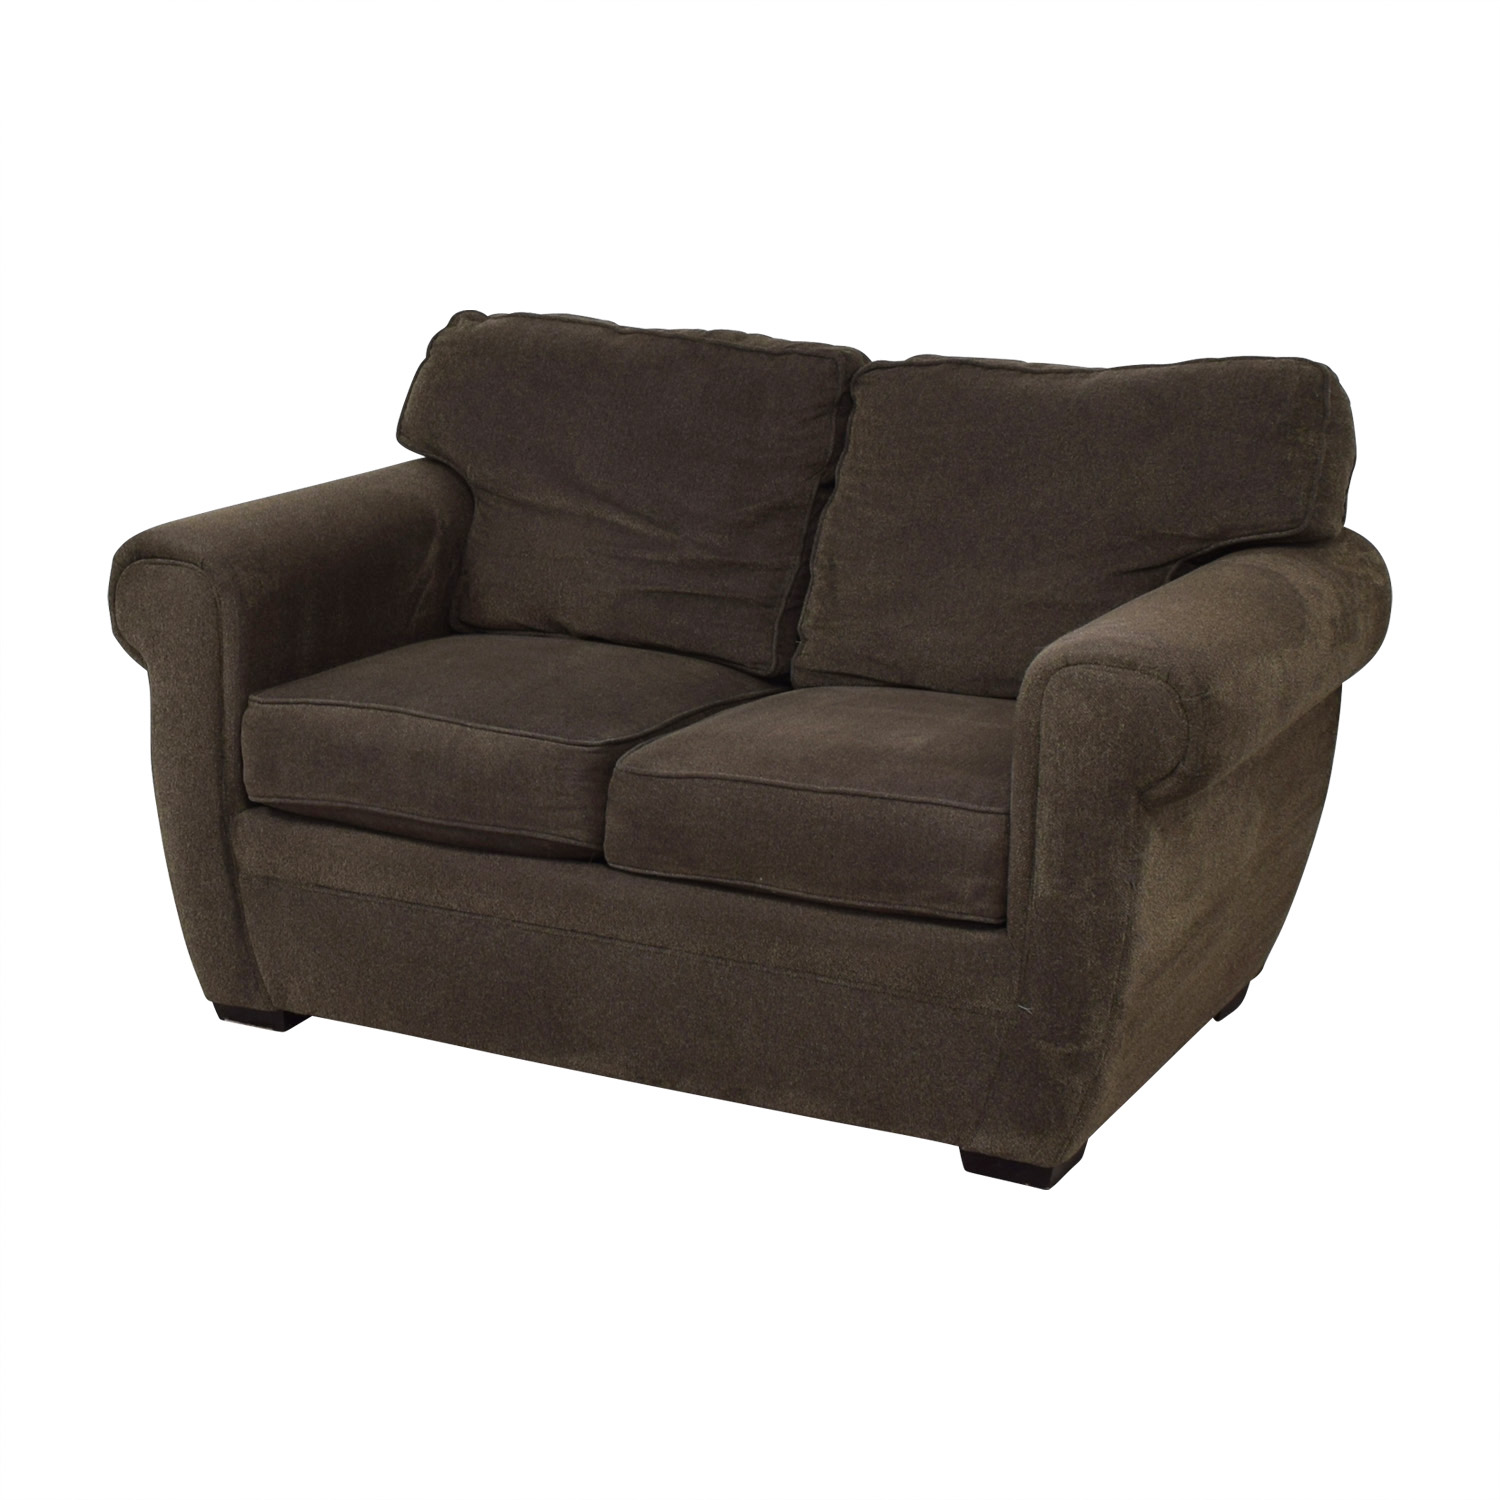 Broyhill Broyhill Brown Loveseat nj